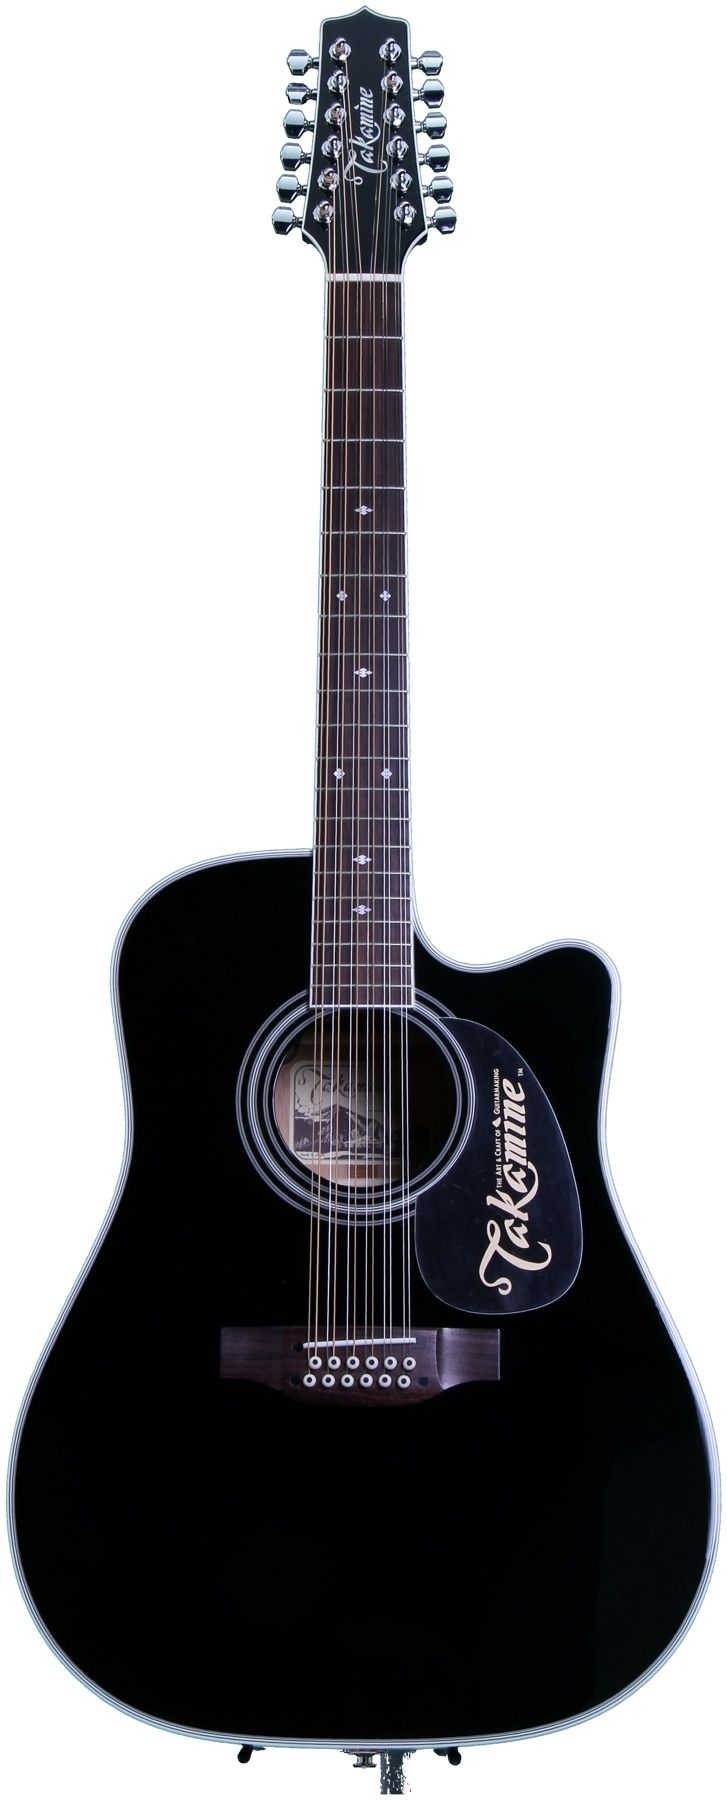 Despite my love for the allure of all things black, I've never been into plain gloss black guitars... Until now. I'm quite taken with the Takamine EF381SC.